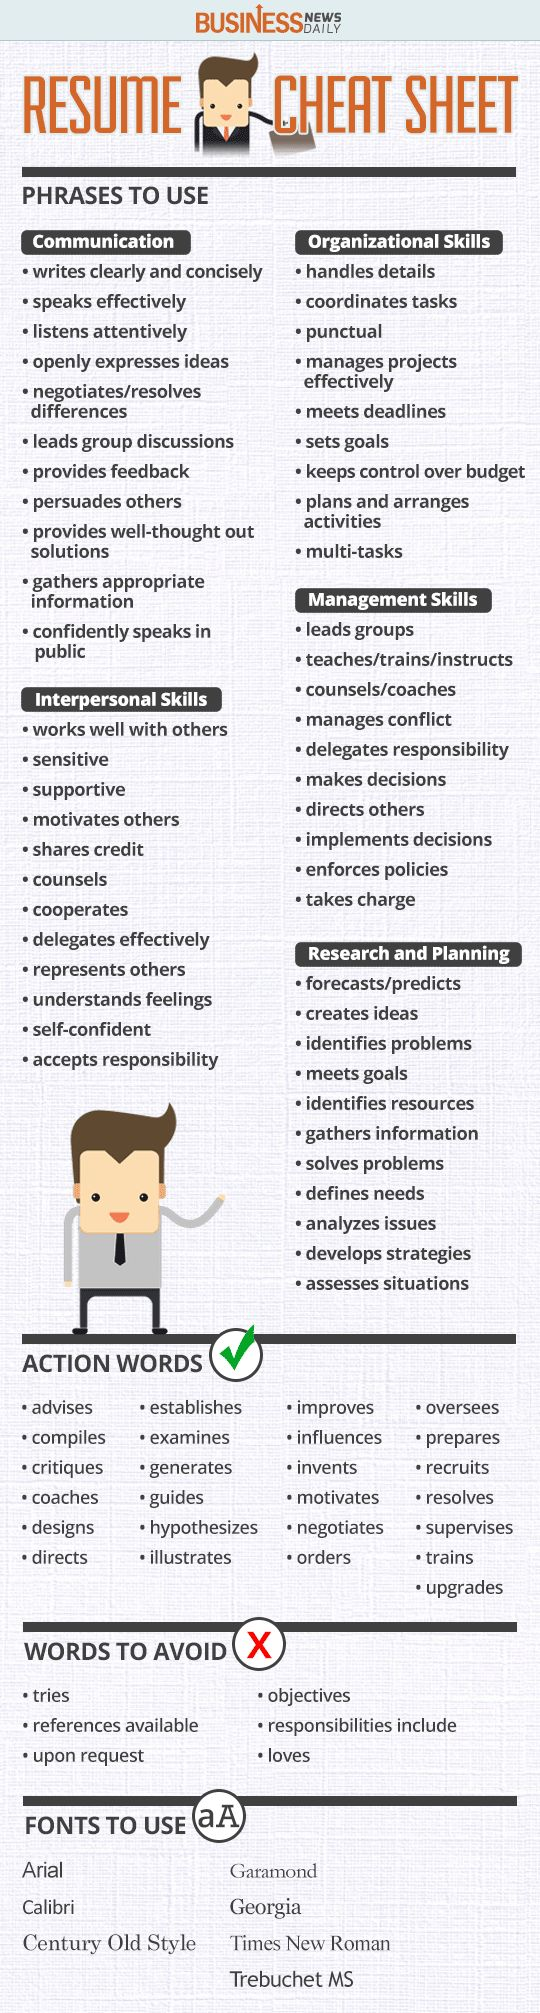 Opposenewapstandardsus  Marvelous  Ideas About Resume On Pinterest  Cv Format Resume Cv And  With Licious Resume Cheat Sheet Infographic Andrews Almost Done With A Complete Unit On Employment Which With Divine Objective For Retail Resume Also Science Teacher Resume In Addition Customer Service Specialist Resume And Medical Device Sales Resume As Well As Resume Education In Progress Additionally Resume Entry Level From Pinterestcom With Opposenewapstandardsus  Licious  Ideas About Resume On Pinterest  Cv Format Resume Cv And  With Divine Resume Cheat Sheet Infographic Andrews Almost Done With A Complete Unit On Employment Which And Marvelous Objective For Retail Resume Also Science Teacher Resume In Addition Customer Service Specialist Resume From Pinterestcom